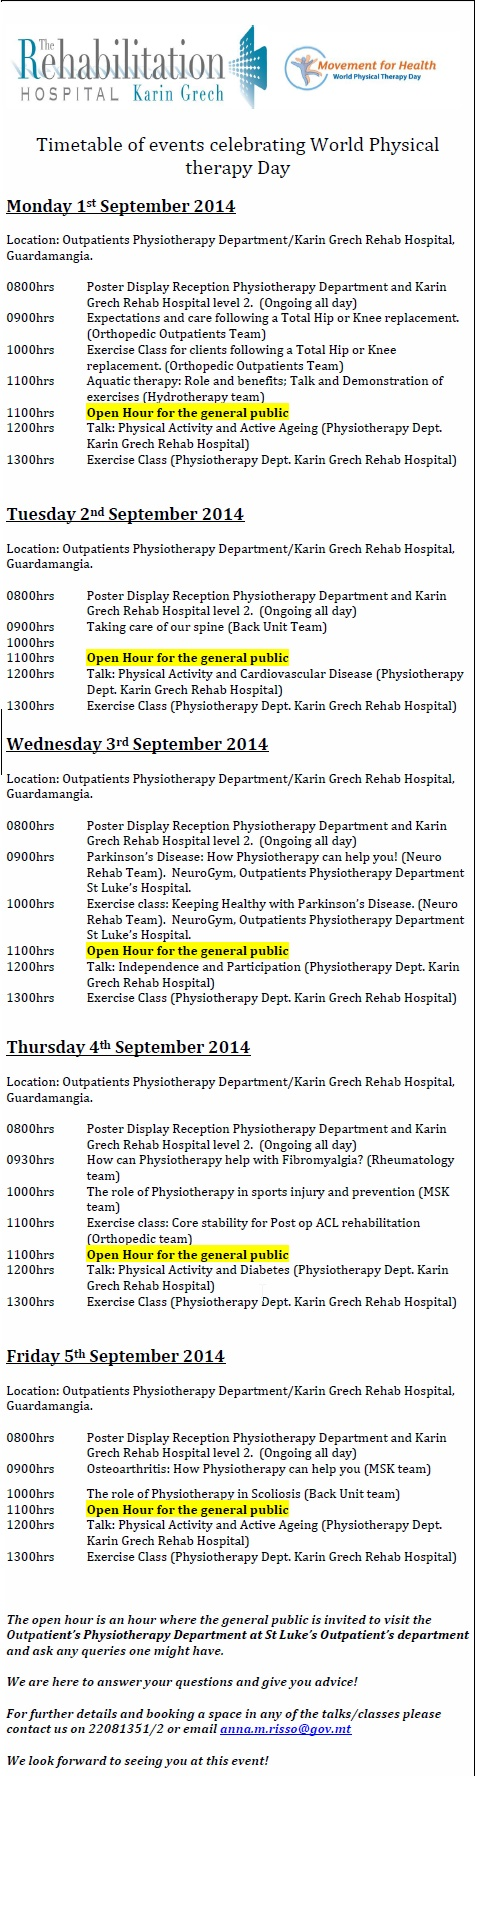 World Physiotherapy Day Timetable